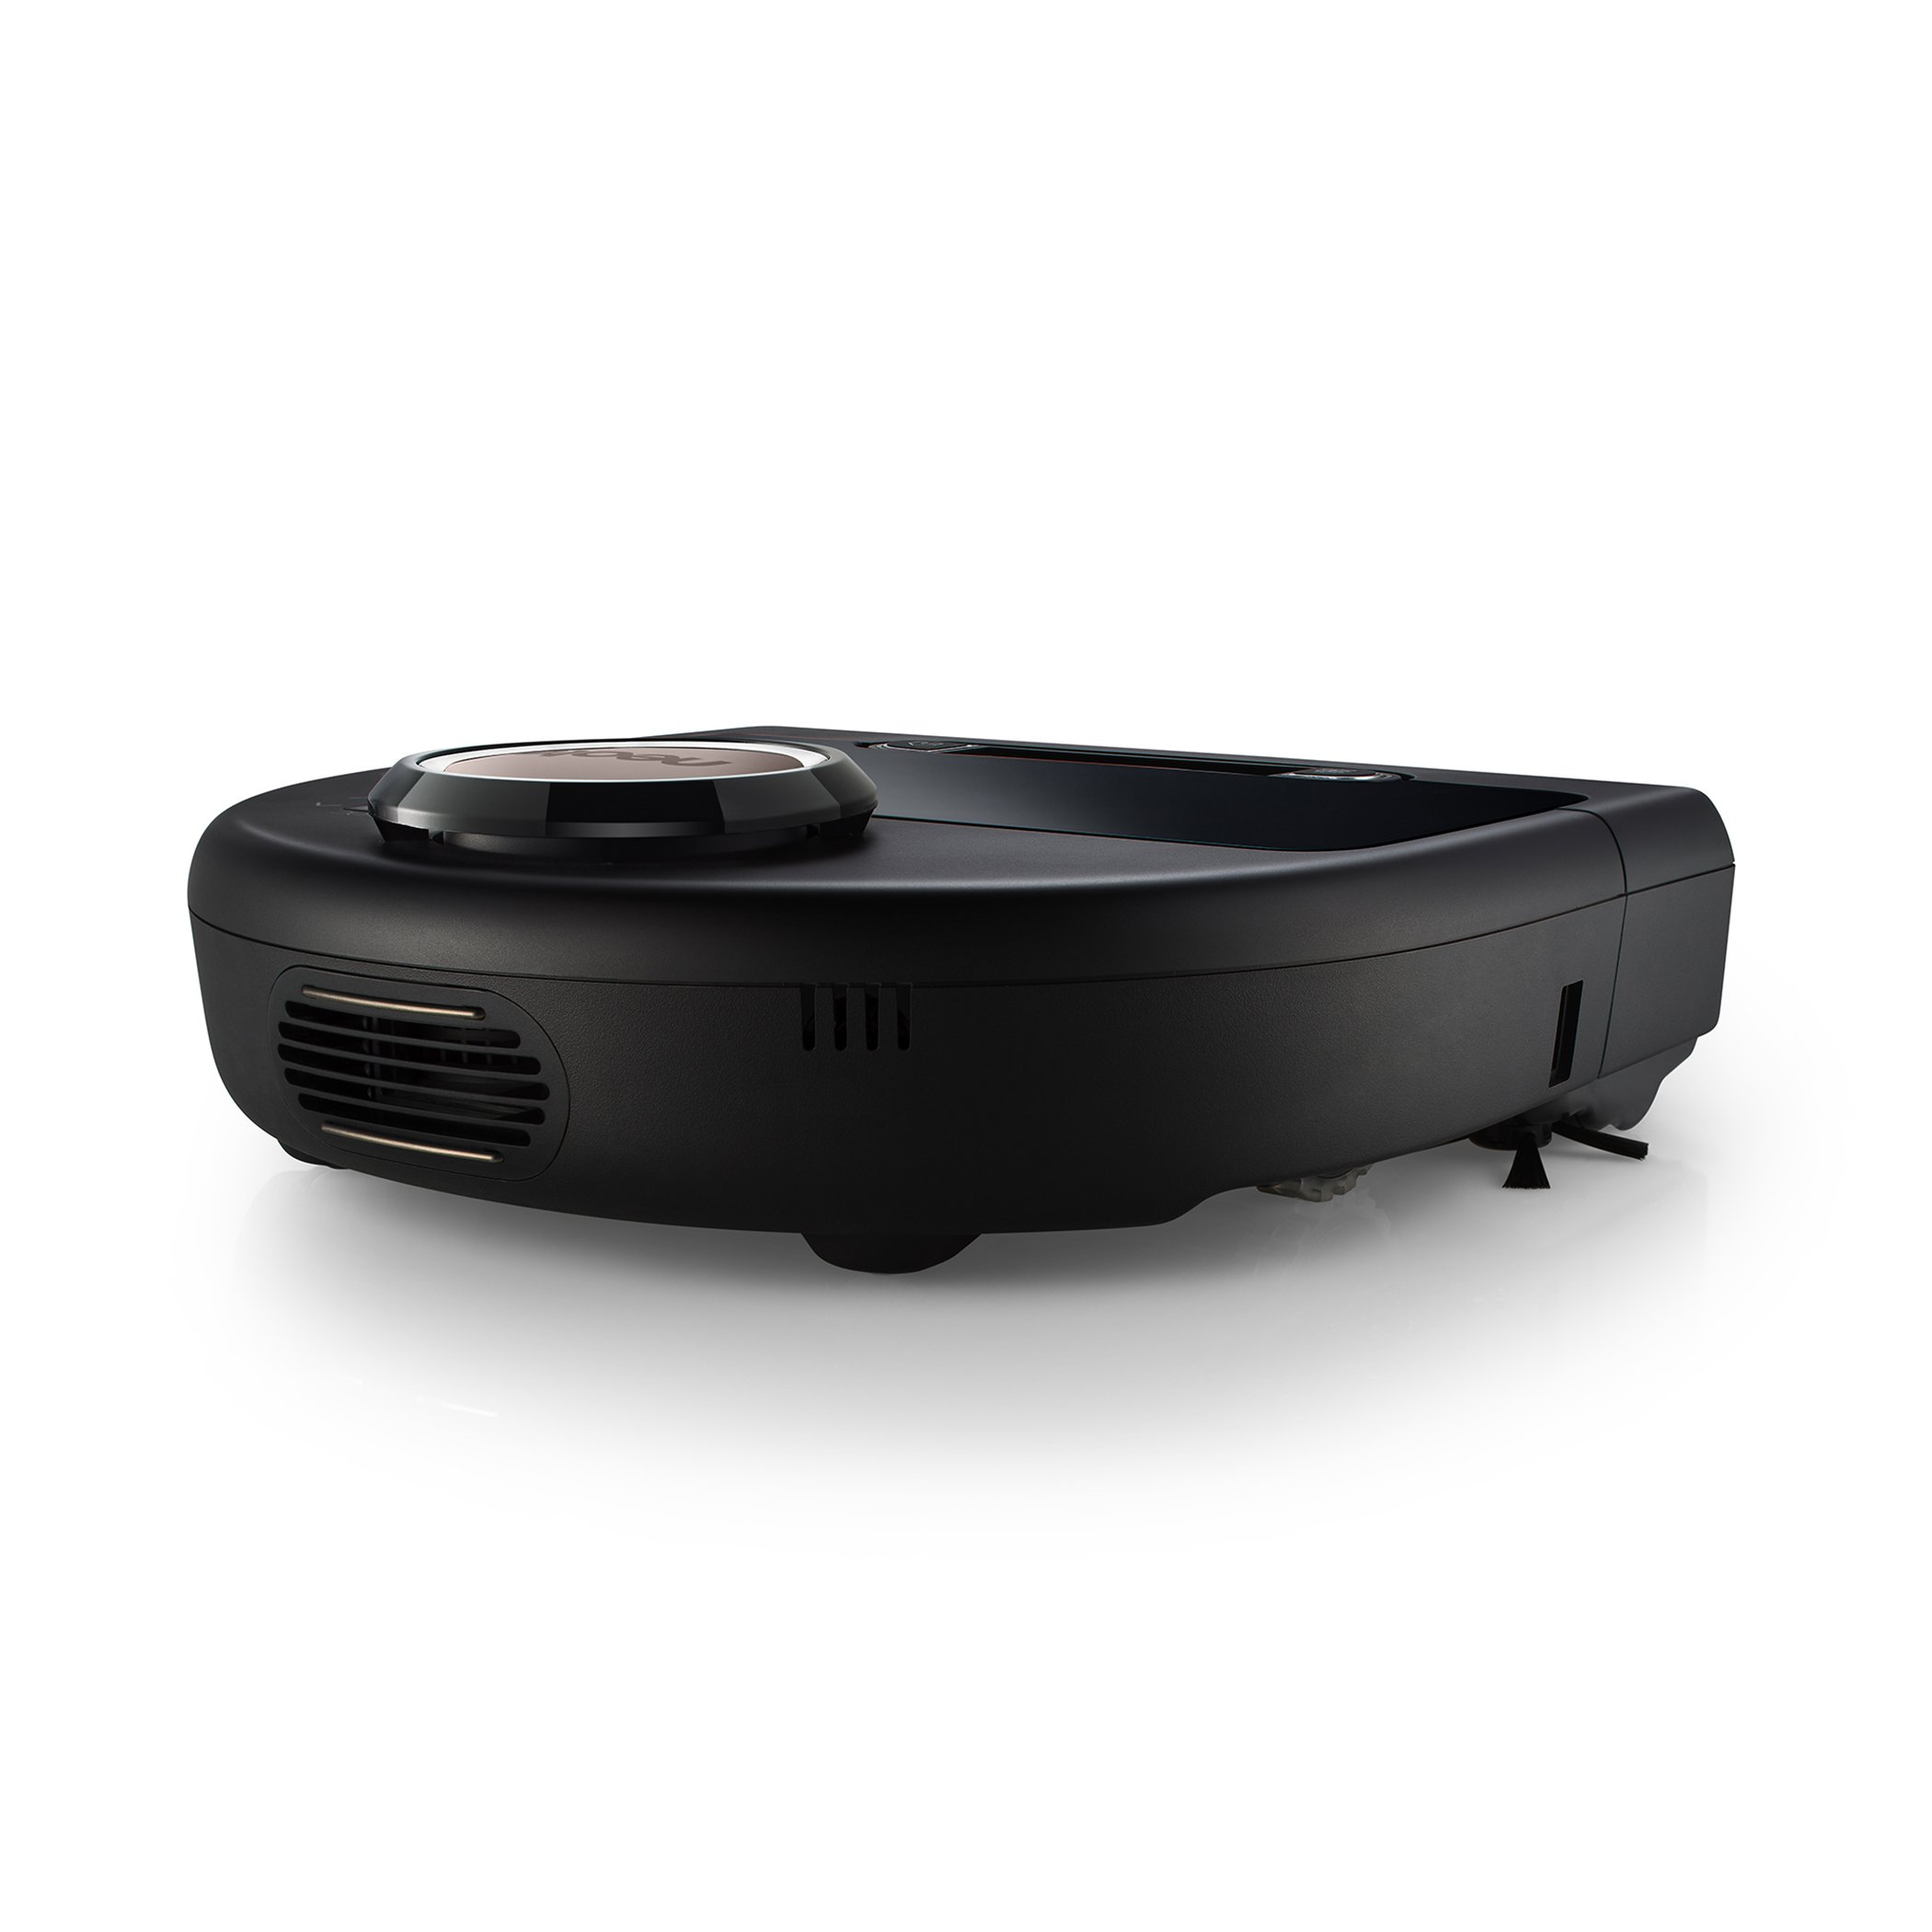 Neato Botvac Connected Wi-Fi Enabled Robot Vacuum, Works with Amazon Alexa by Neato Robotics (Image #4)